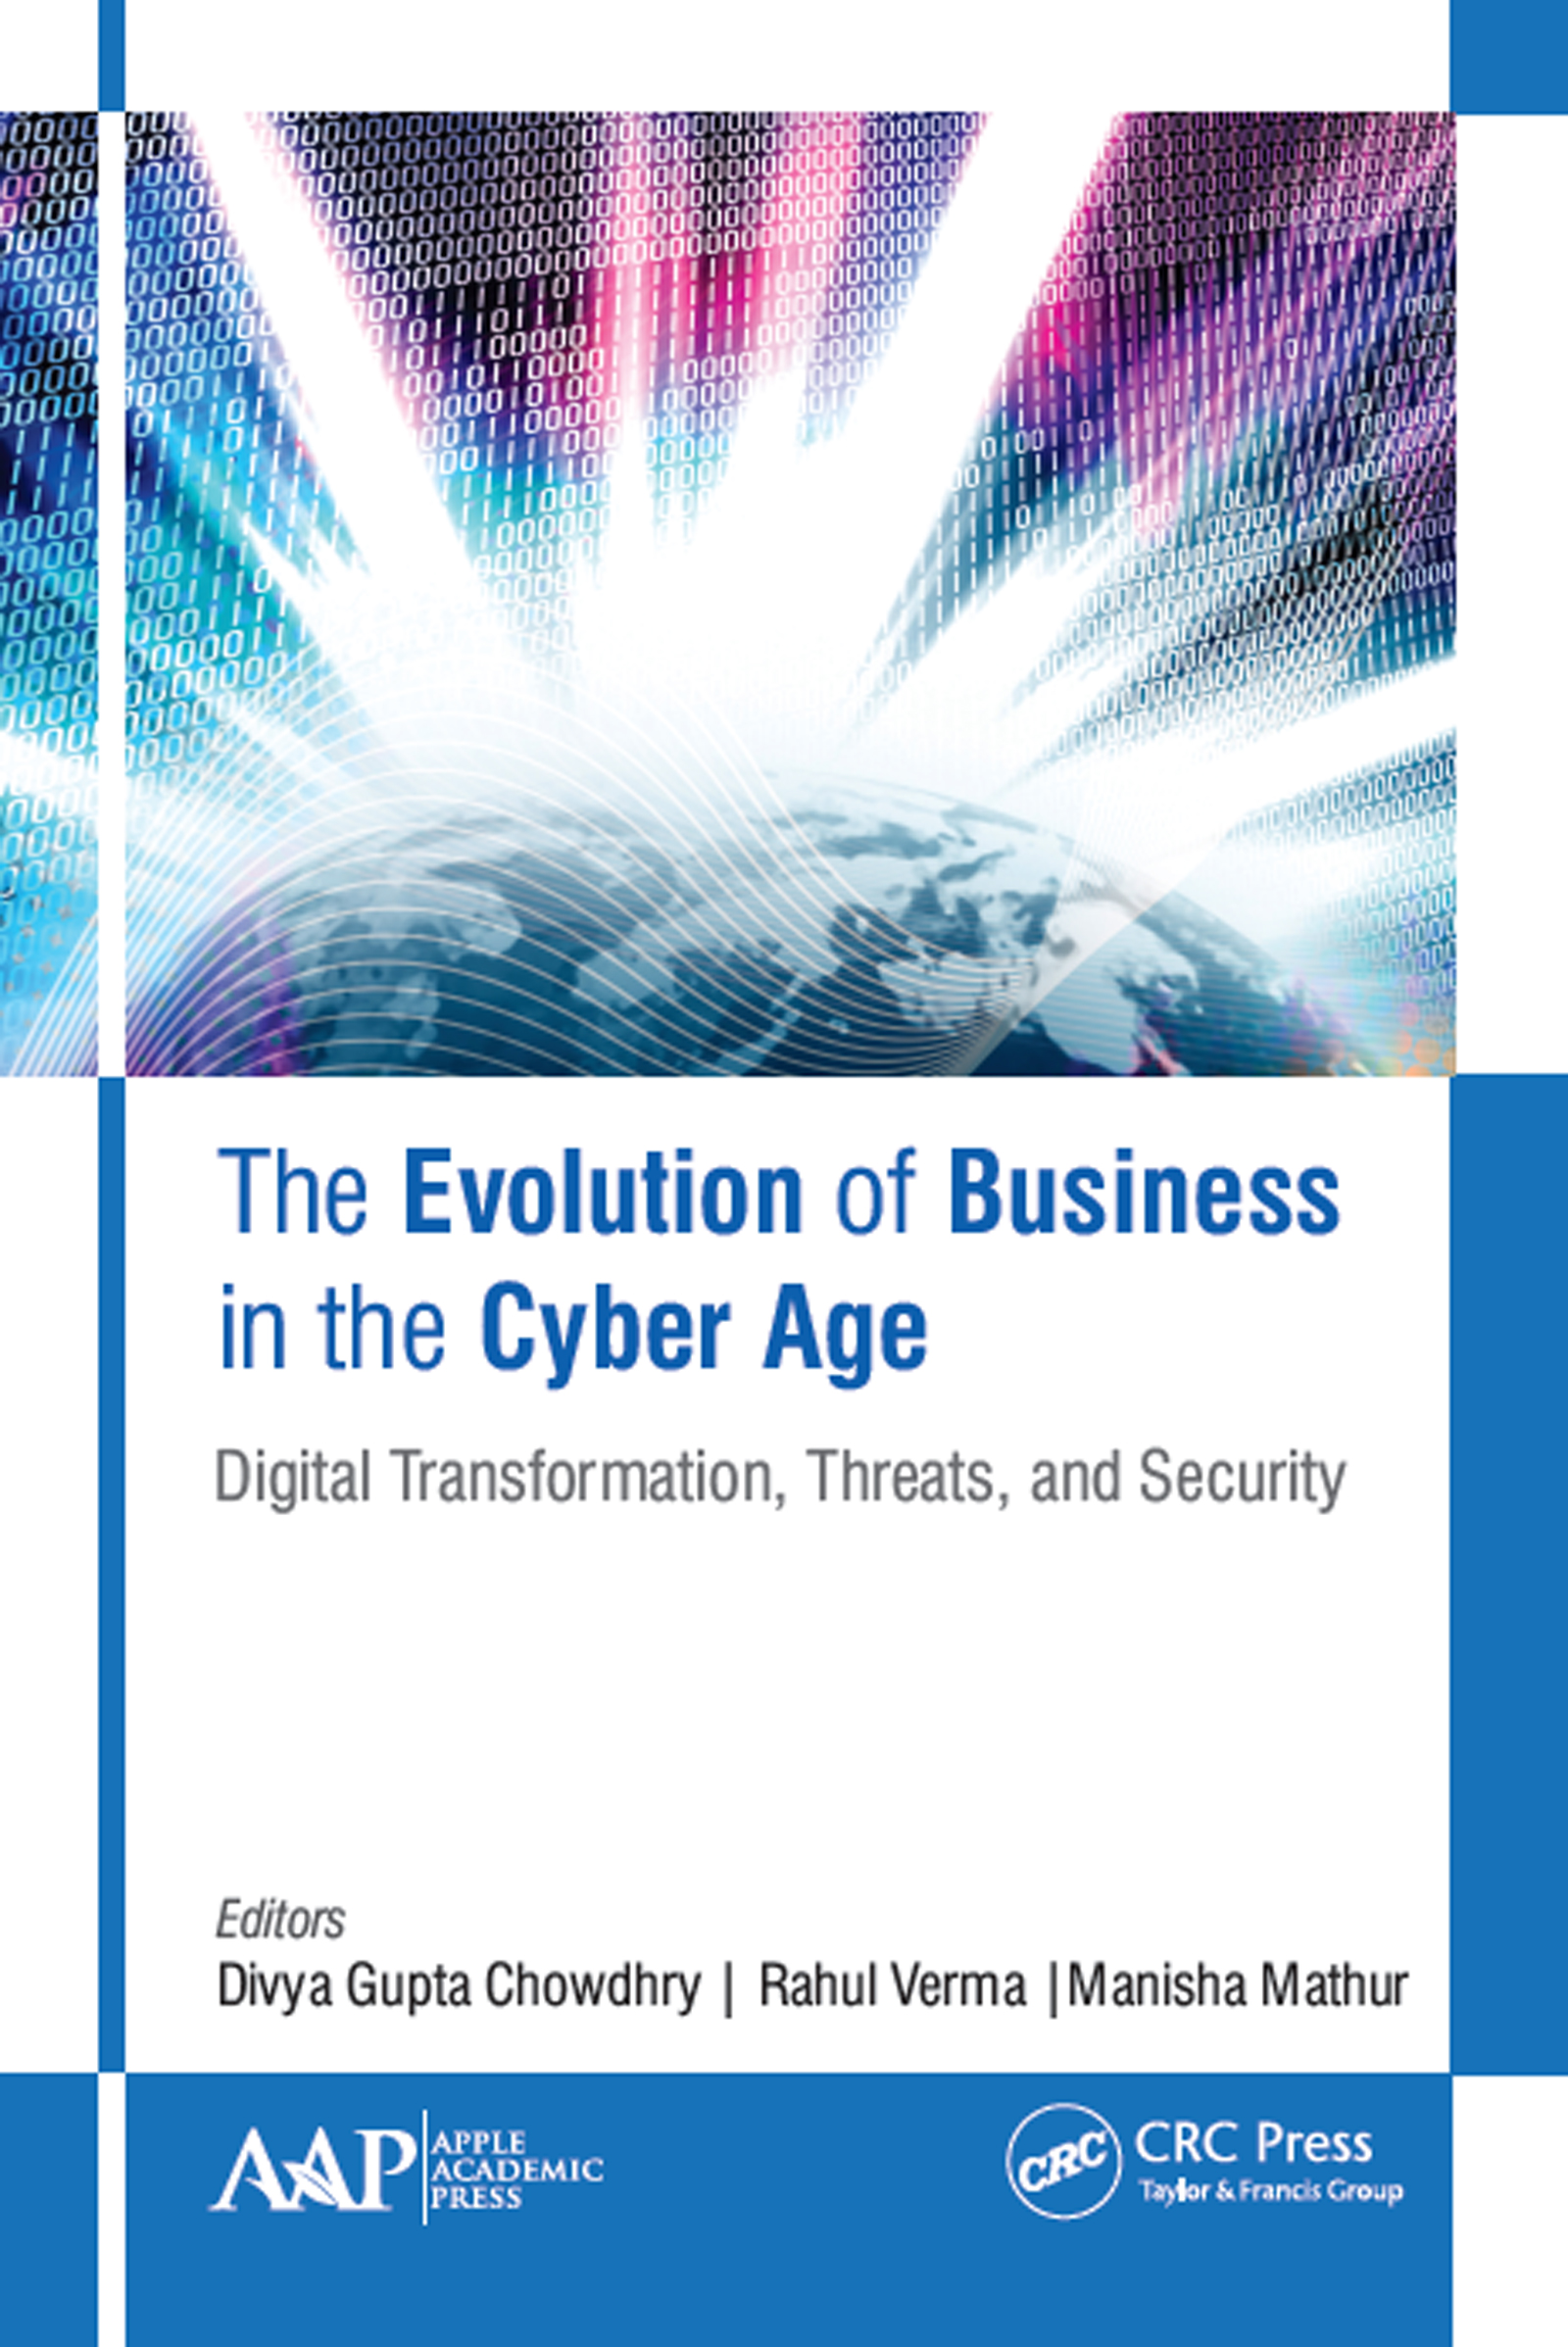 The Evolution of Business in the Cyber Age: Digital Transformation, Threats, and Security book cover